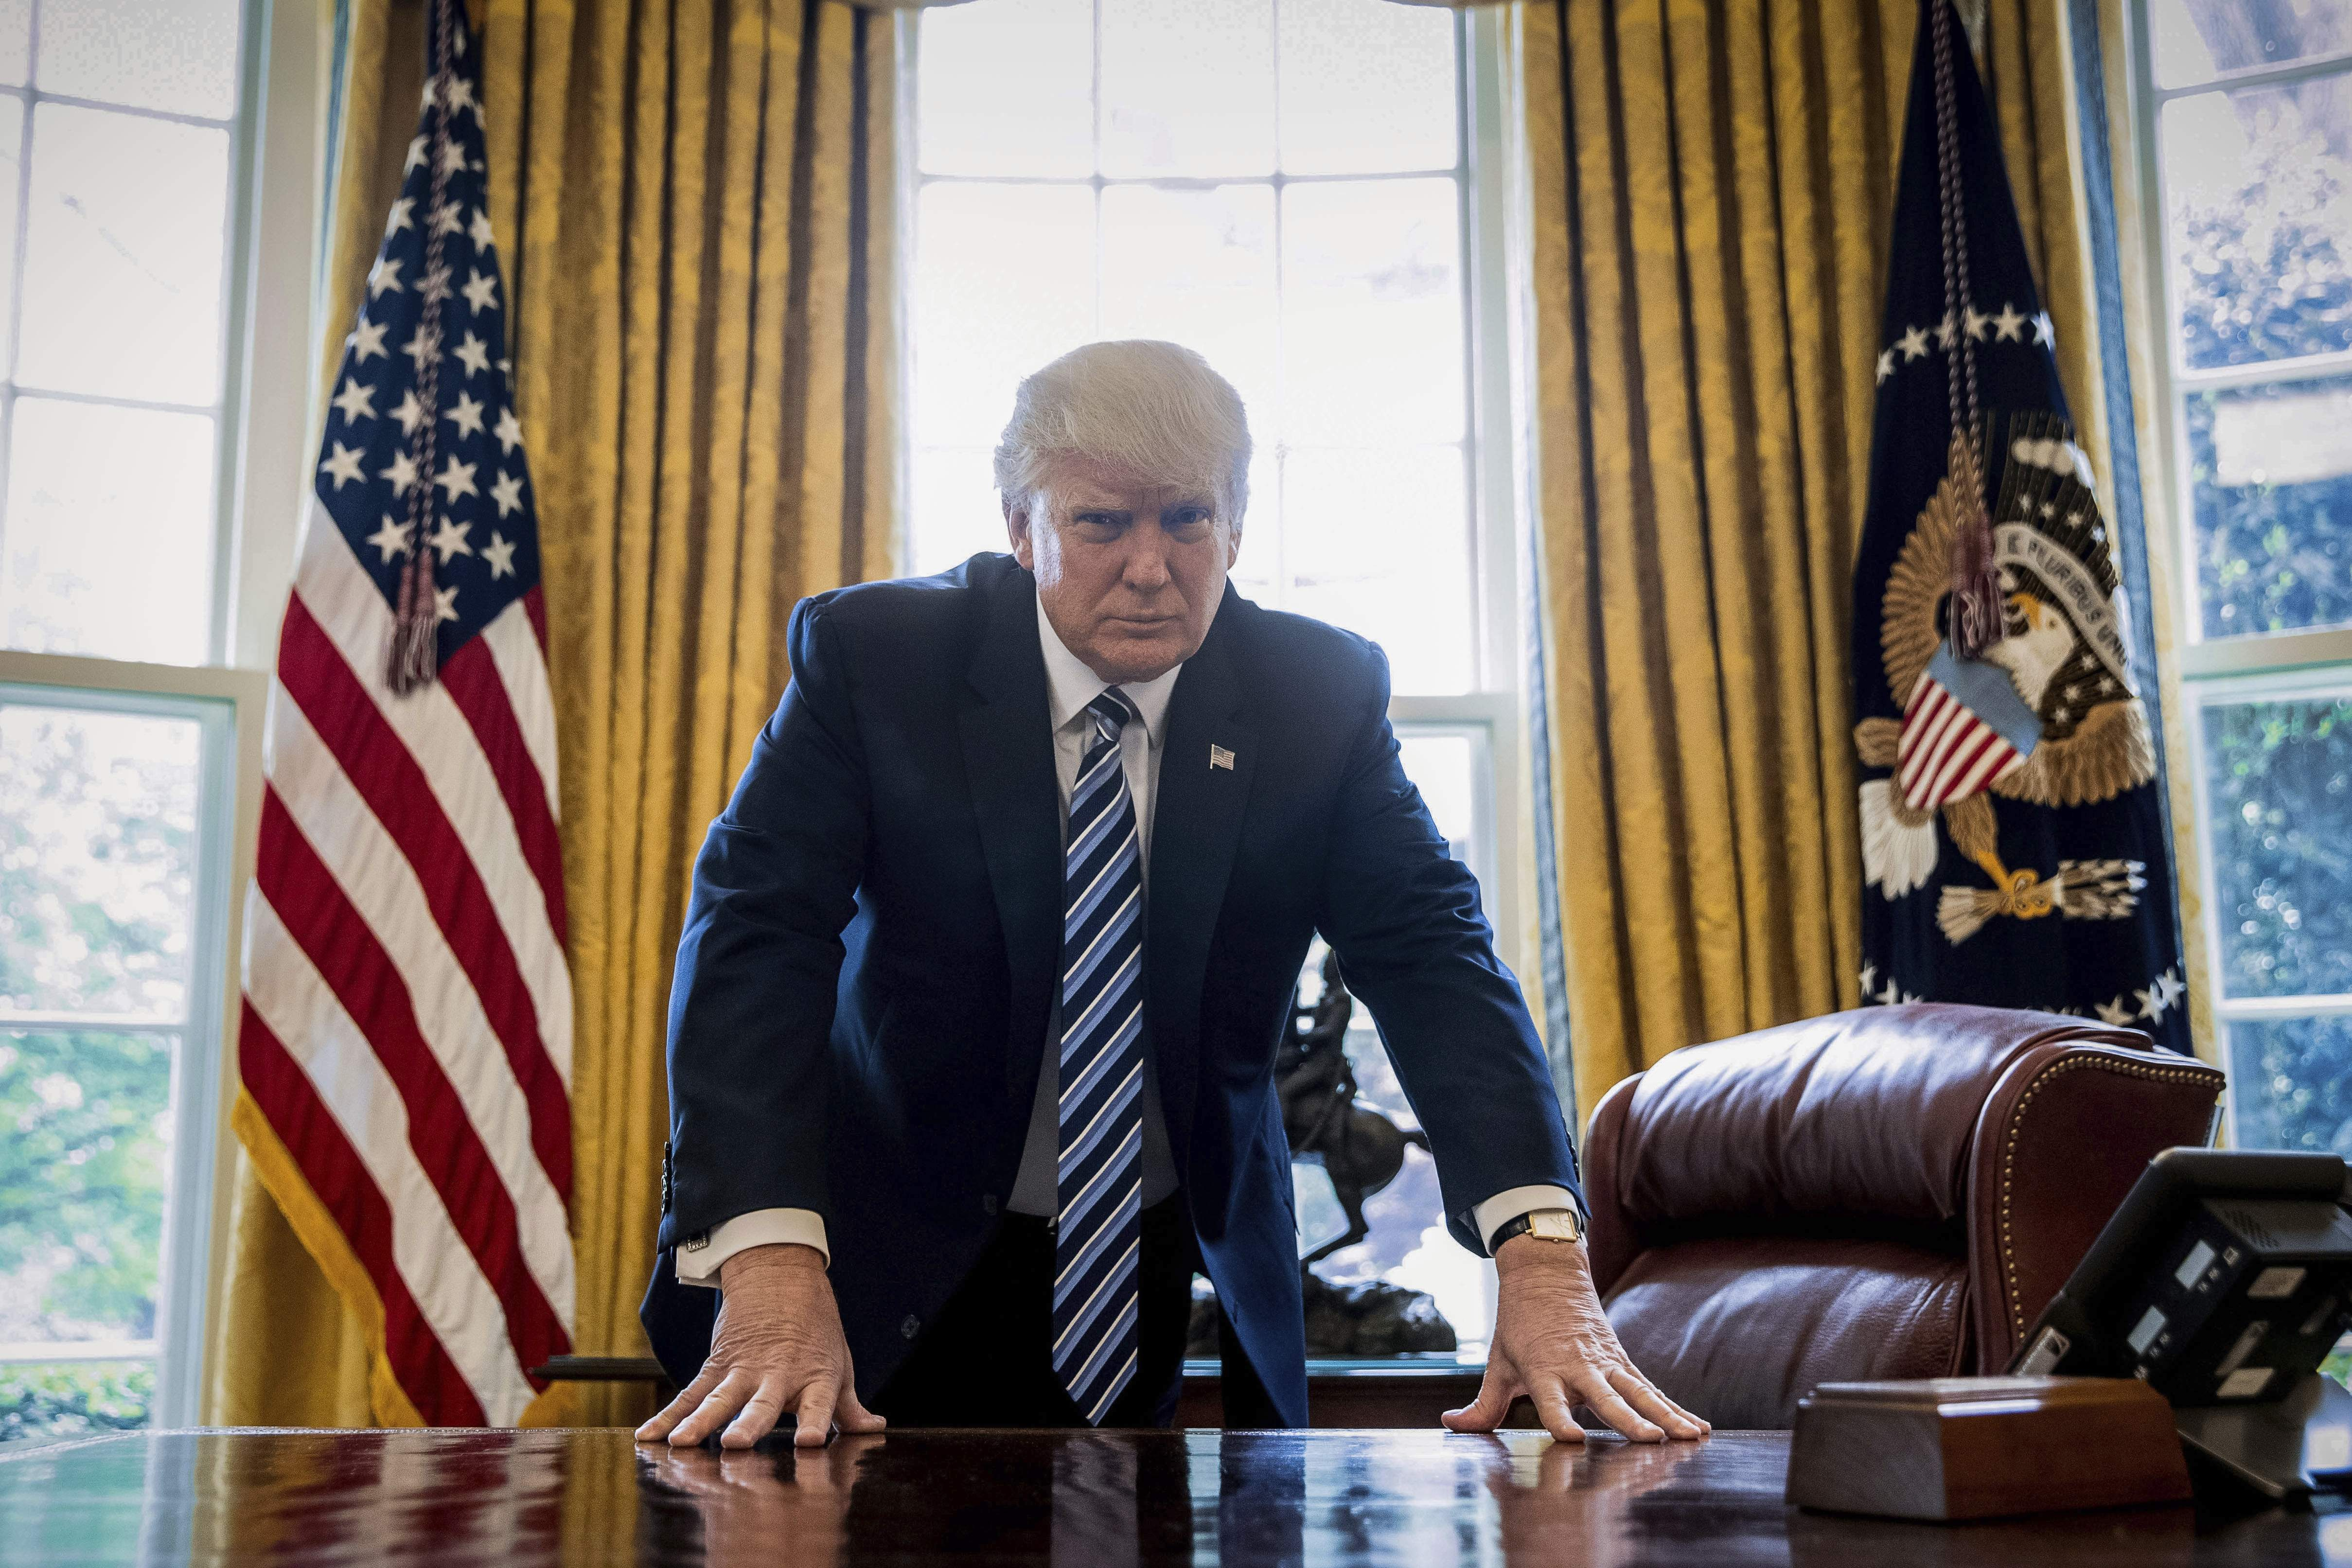 DAY 92 - In this April 21, 2017, file photo, President Donald Trump poses for a portrait in the Oval Office in Washington after an interview with The Associated Press. (AP Photo/Andrew Harnik)